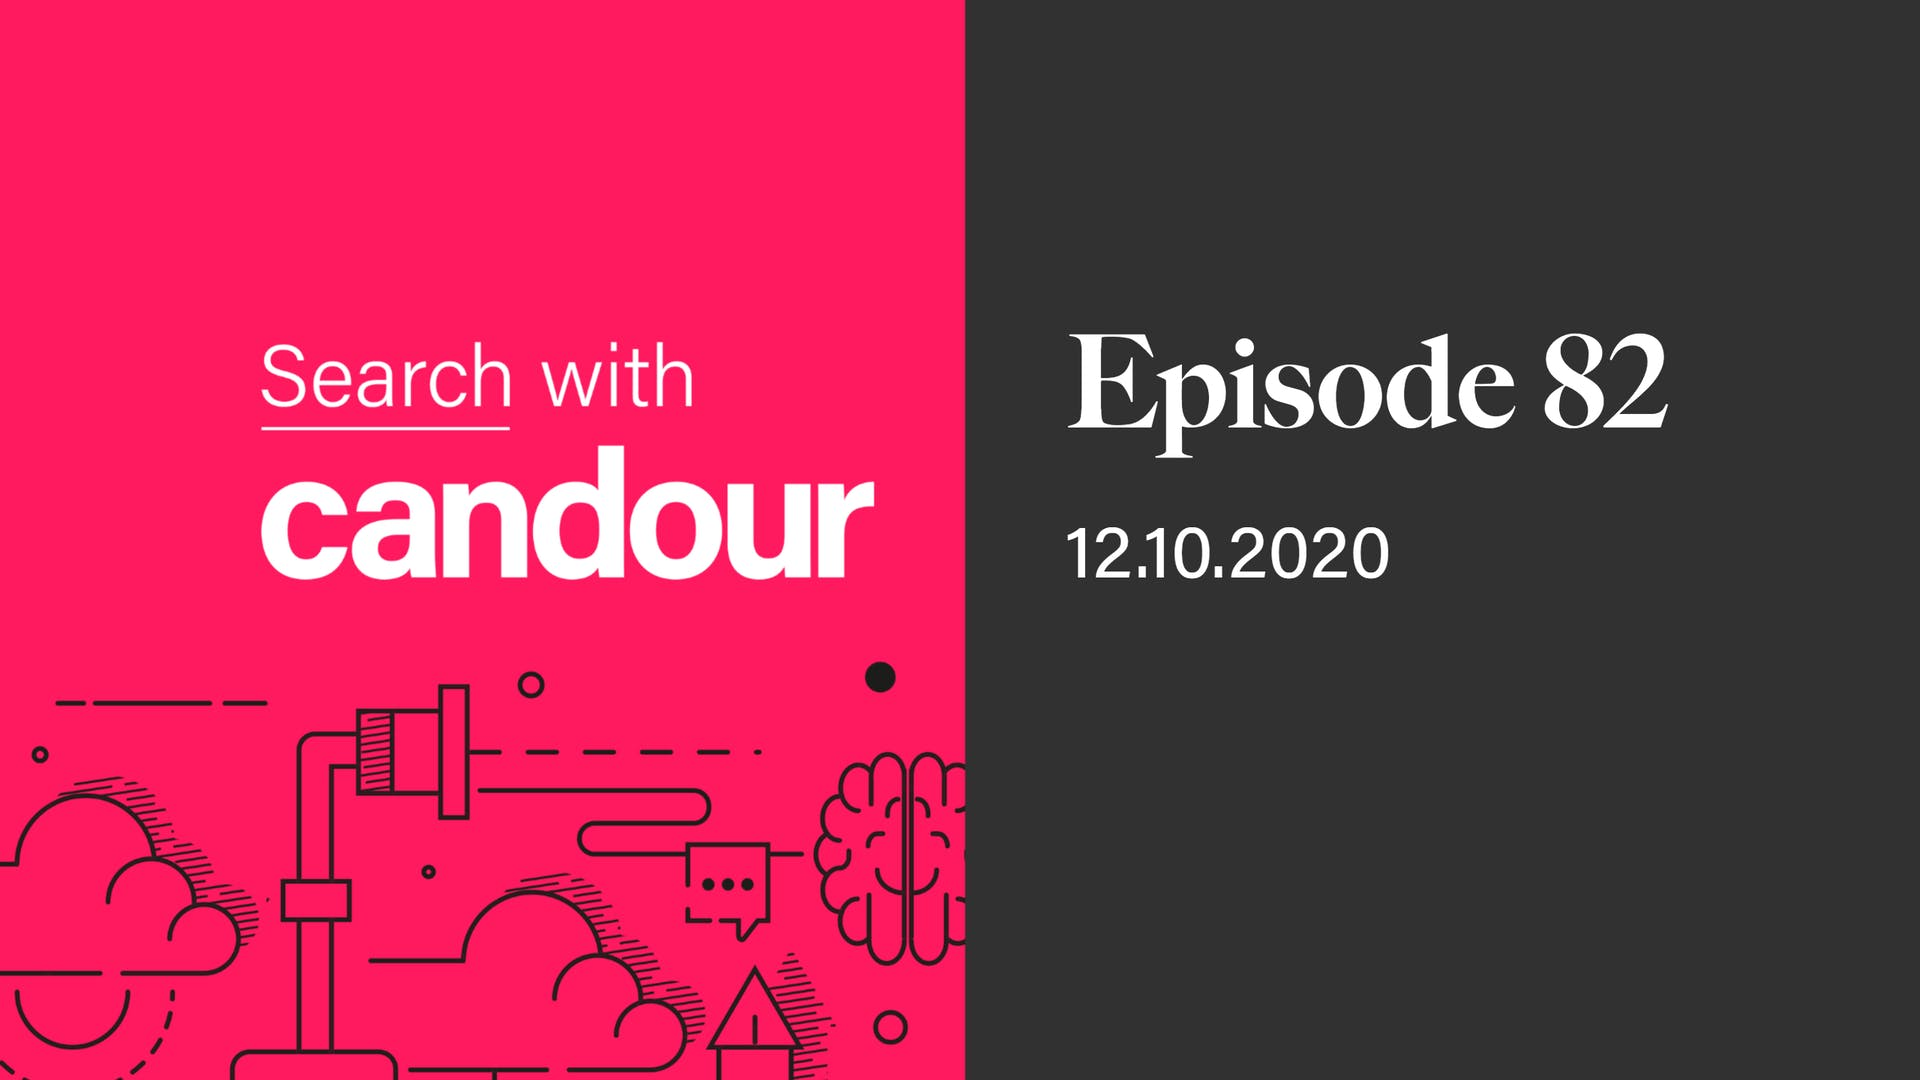 Search with Candour - Episode 82